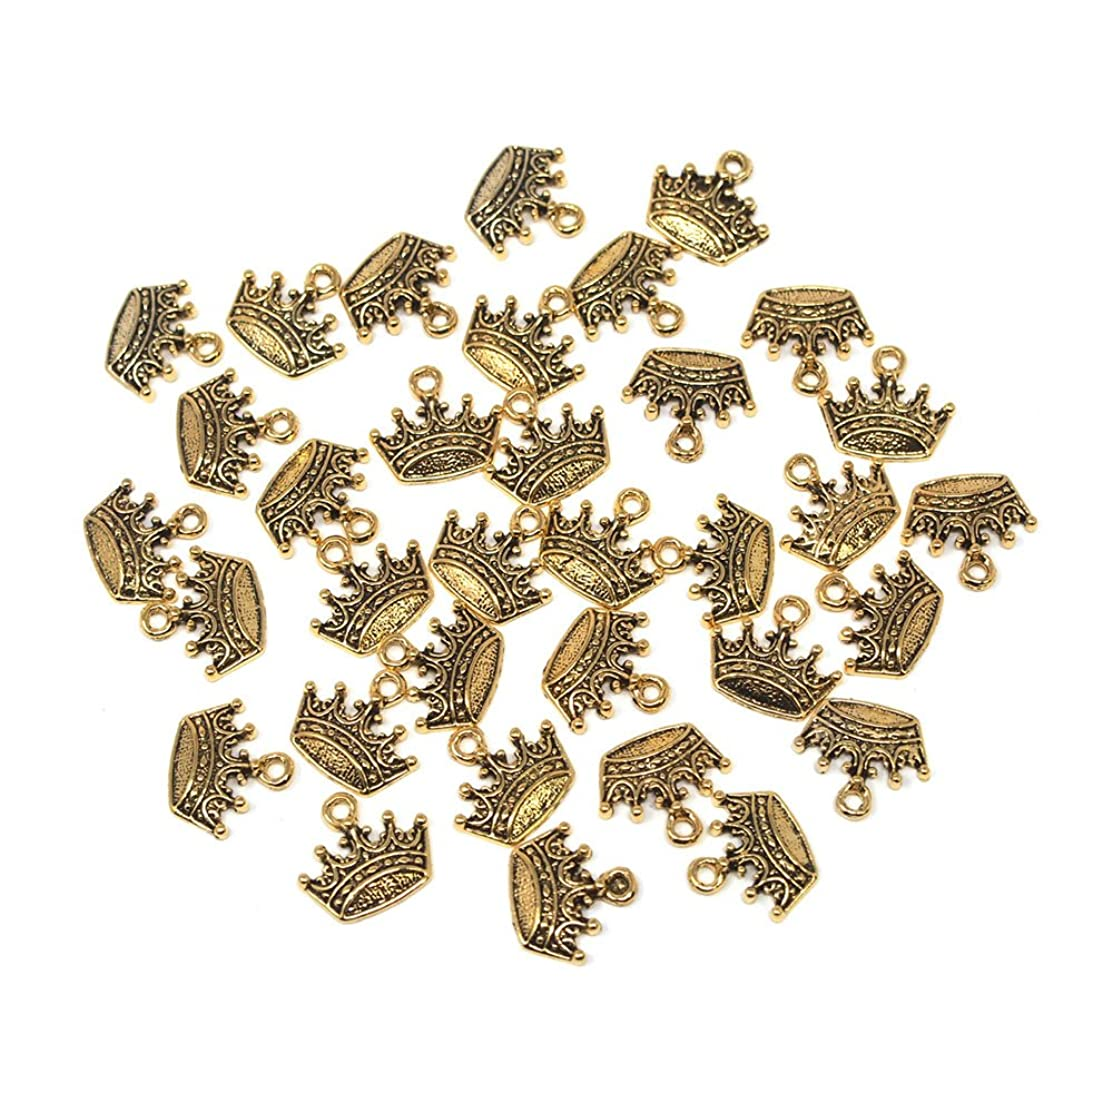 Homeford Small Crown Metal Charms, 3/4-Inch, 36-Count (Gold)